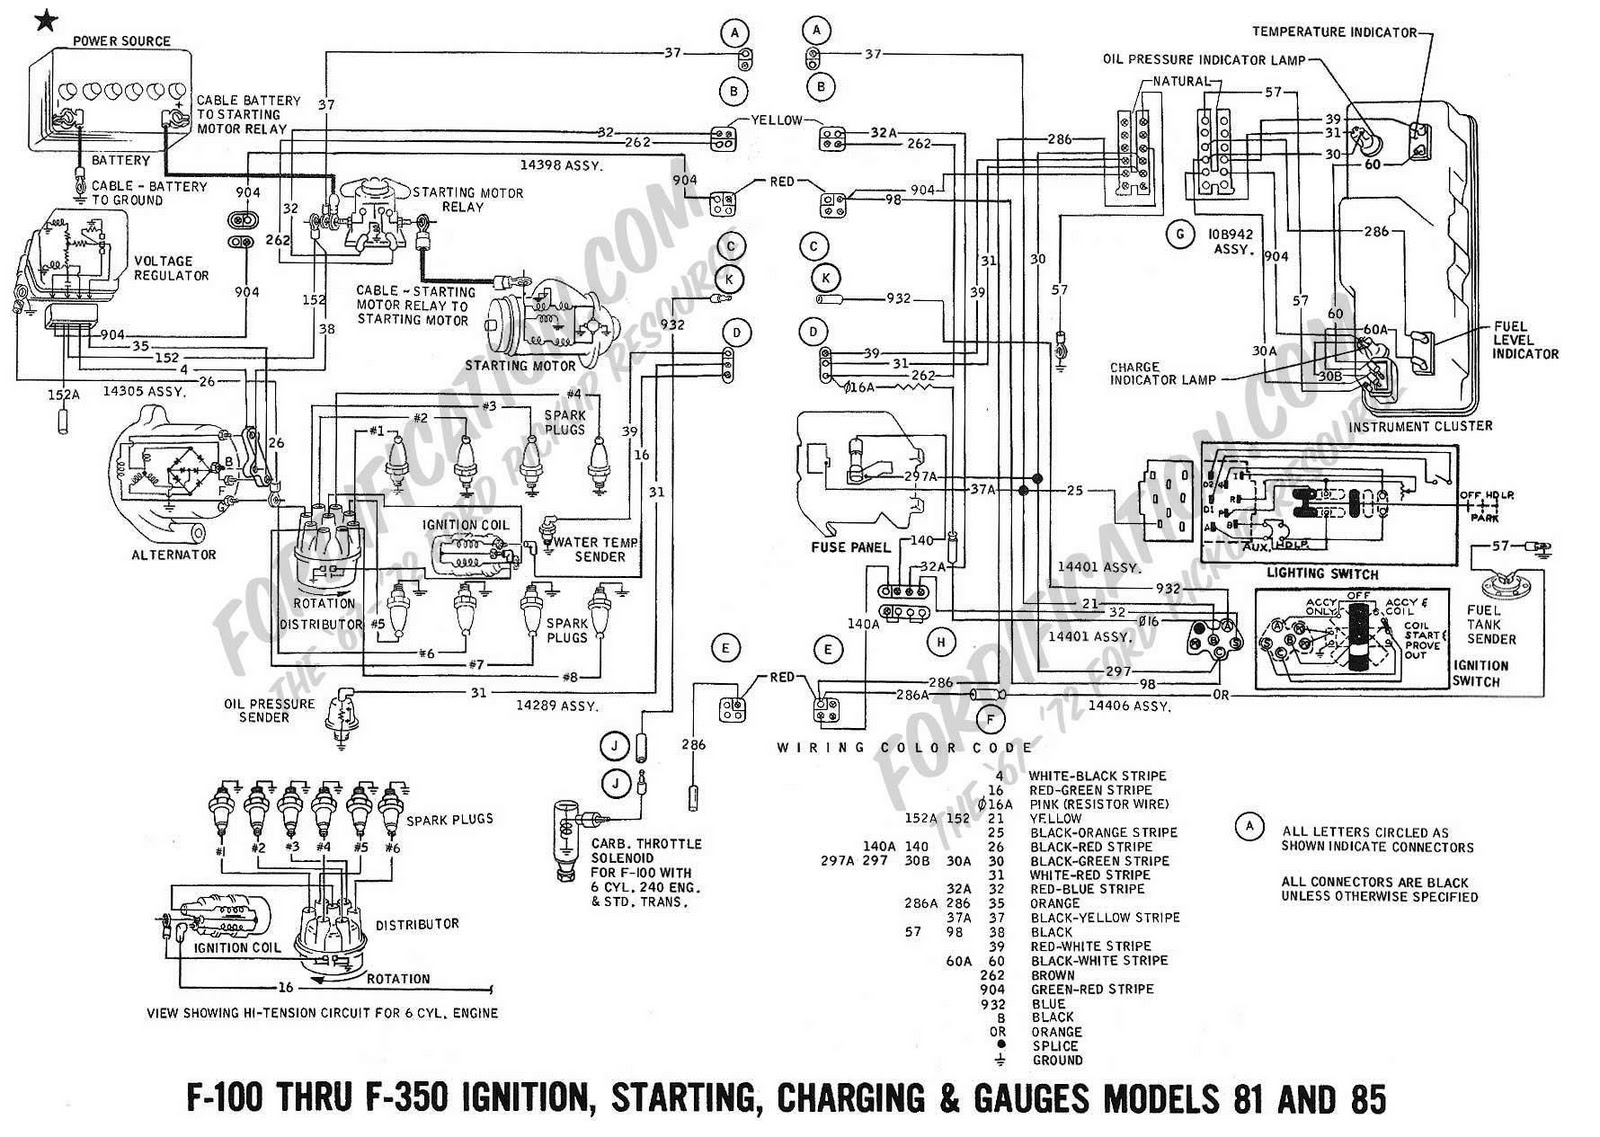 4 1 haul system diagram wiring schematic wiring diagram schematics boat alternator diagram advantage boats wiring diagram [ 1600 x 1137 Pixel ]